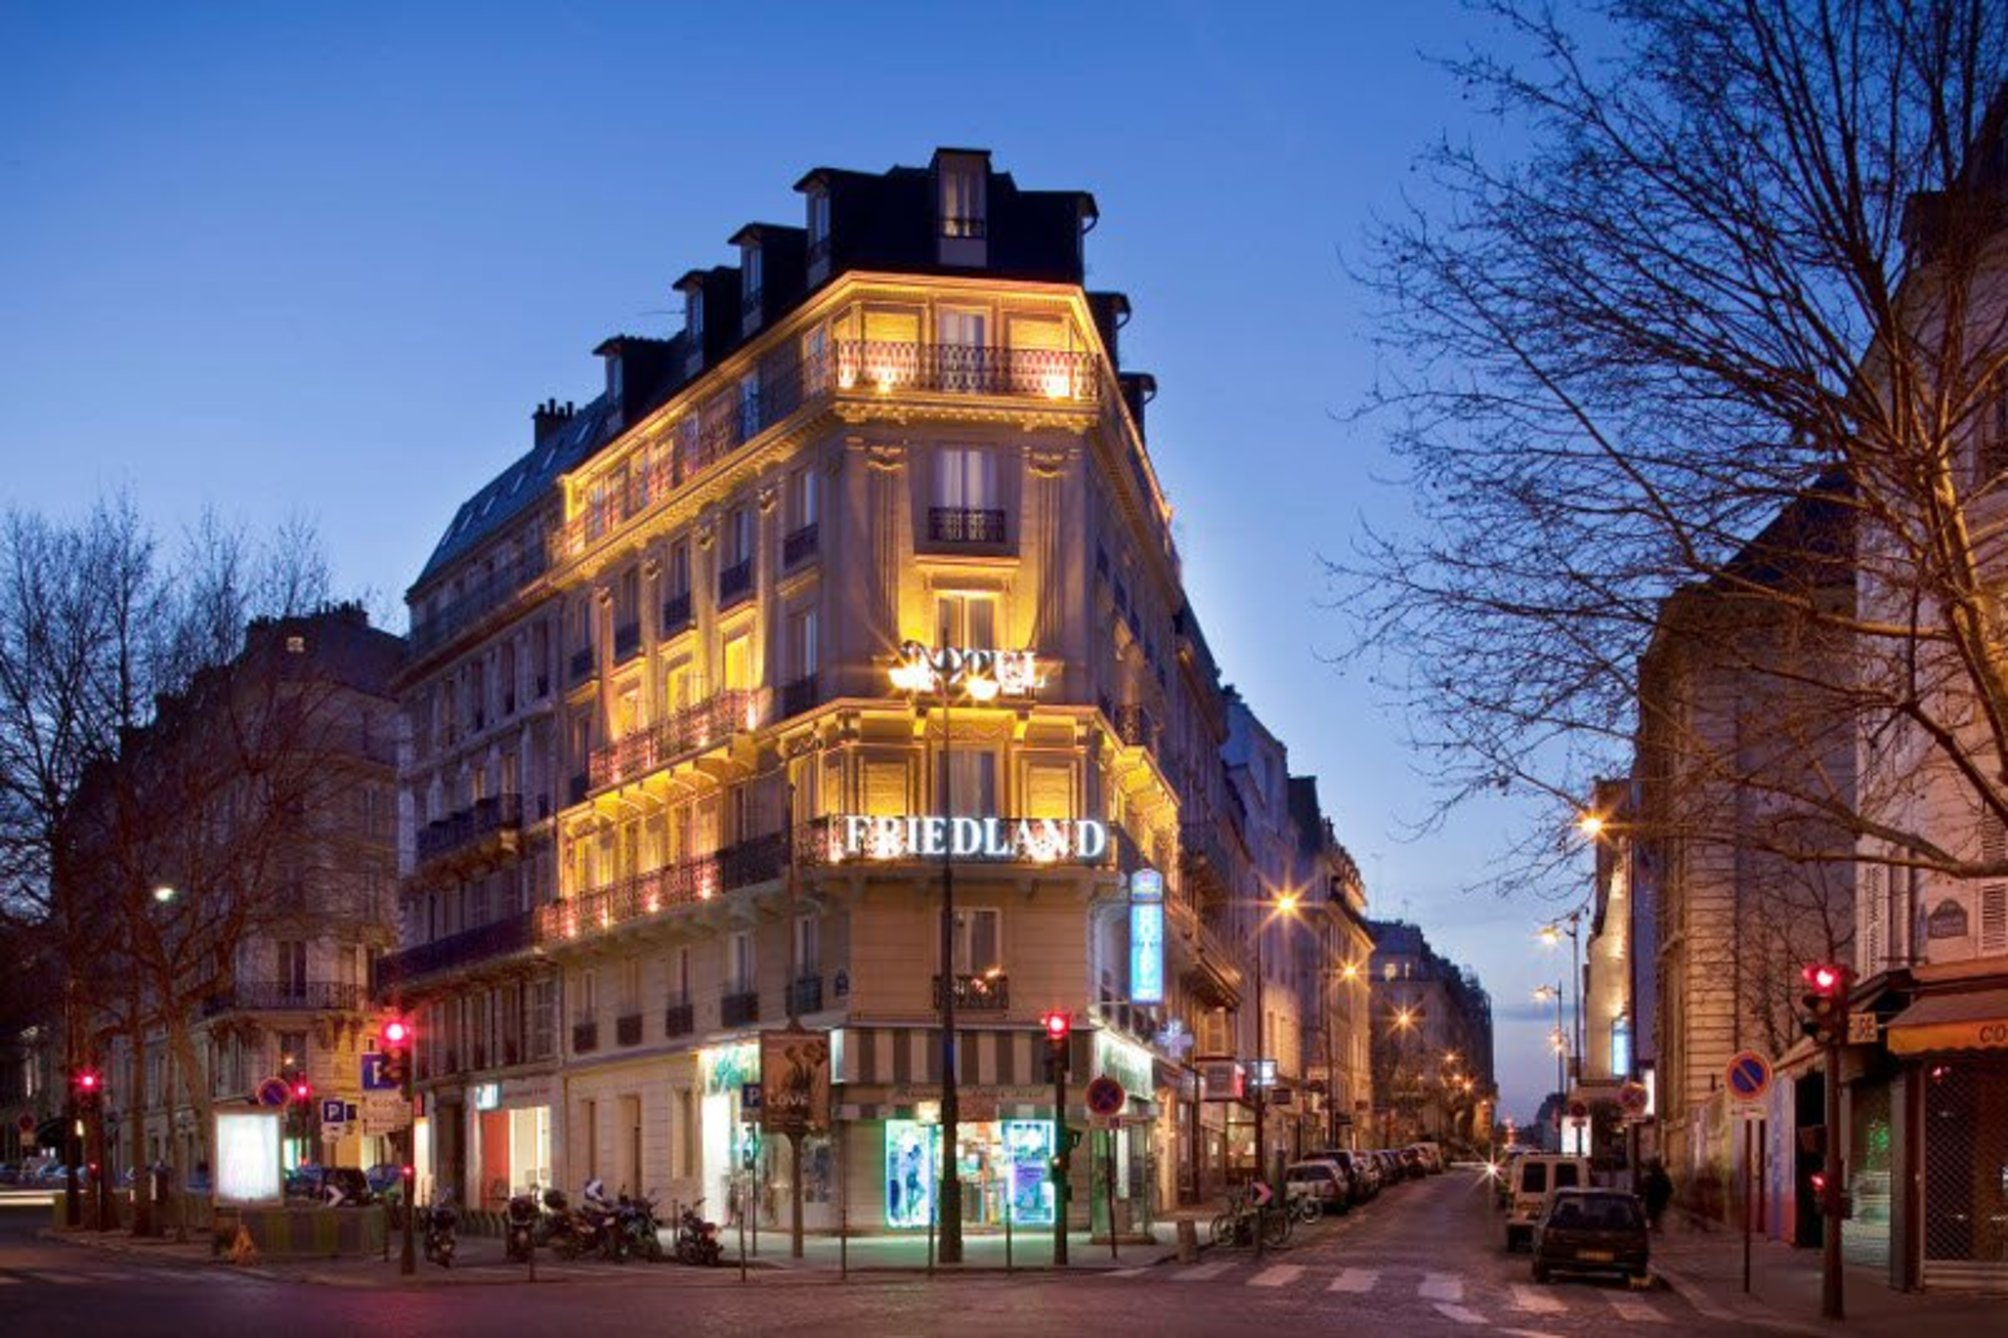 Hotel best western champs elysees friedland em paris desde for Hotel best western paris